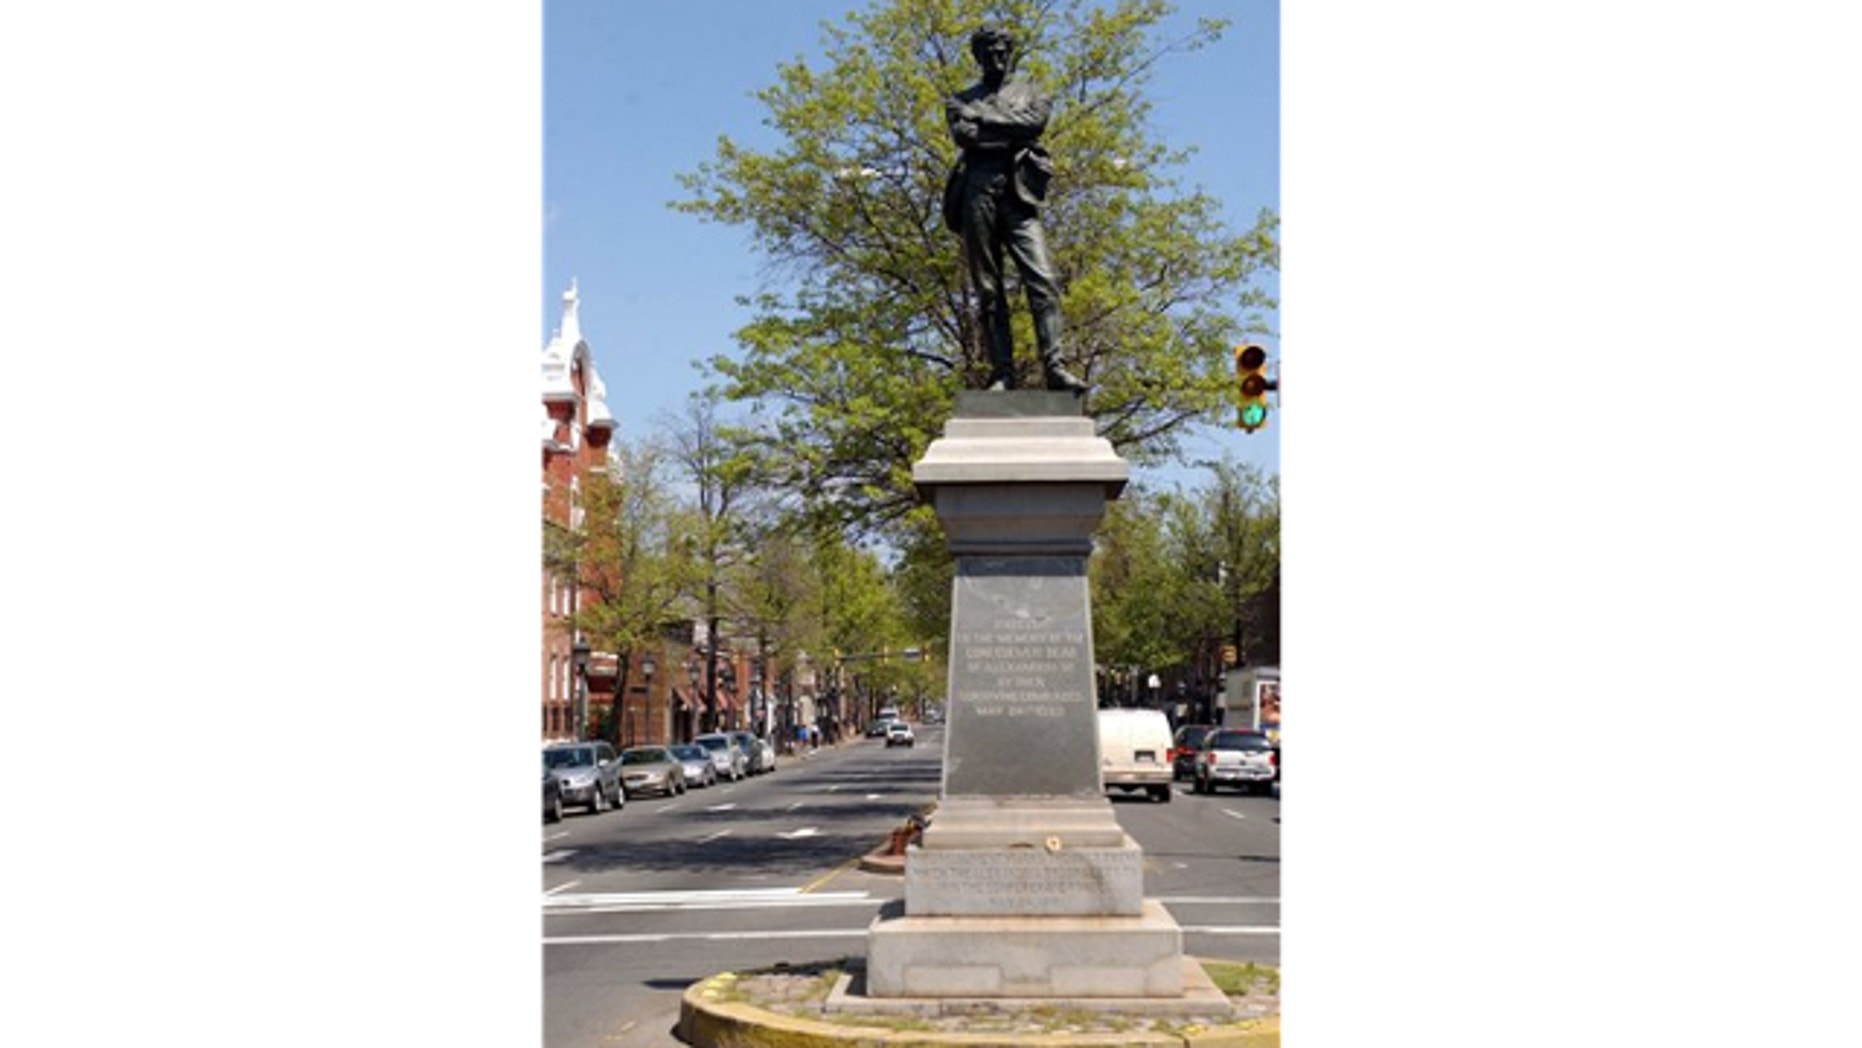 FILE: April 23, 2003: This photo shows a statue of a Confederate soldier at an intersection in Alexandria, Va. The city is looking to modernize its laws by removing a provision that requires new north-south streets to be named for Confederate generals.